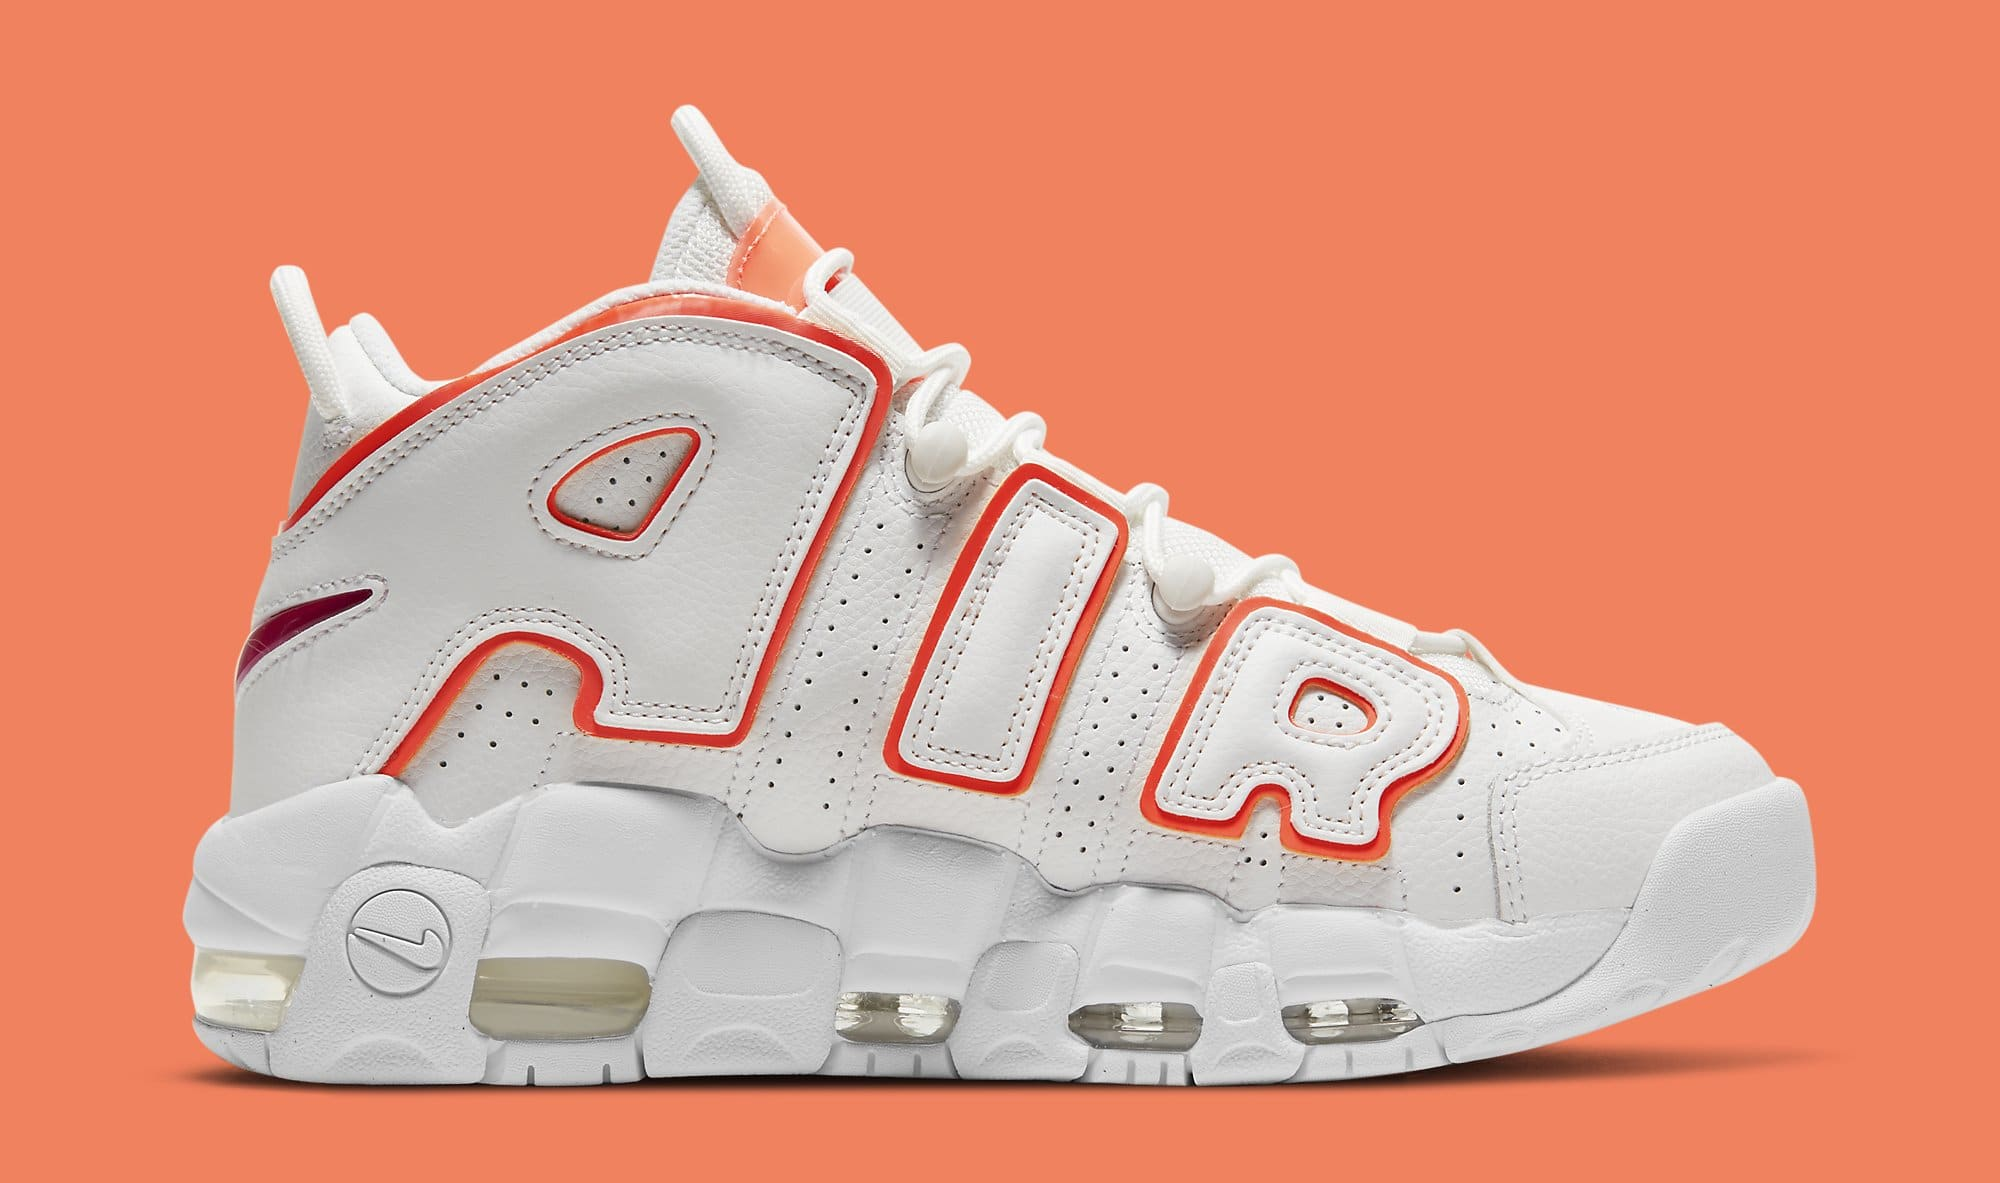 Nike Air More Uptempo 'Sunset' DH4968-100 Medial